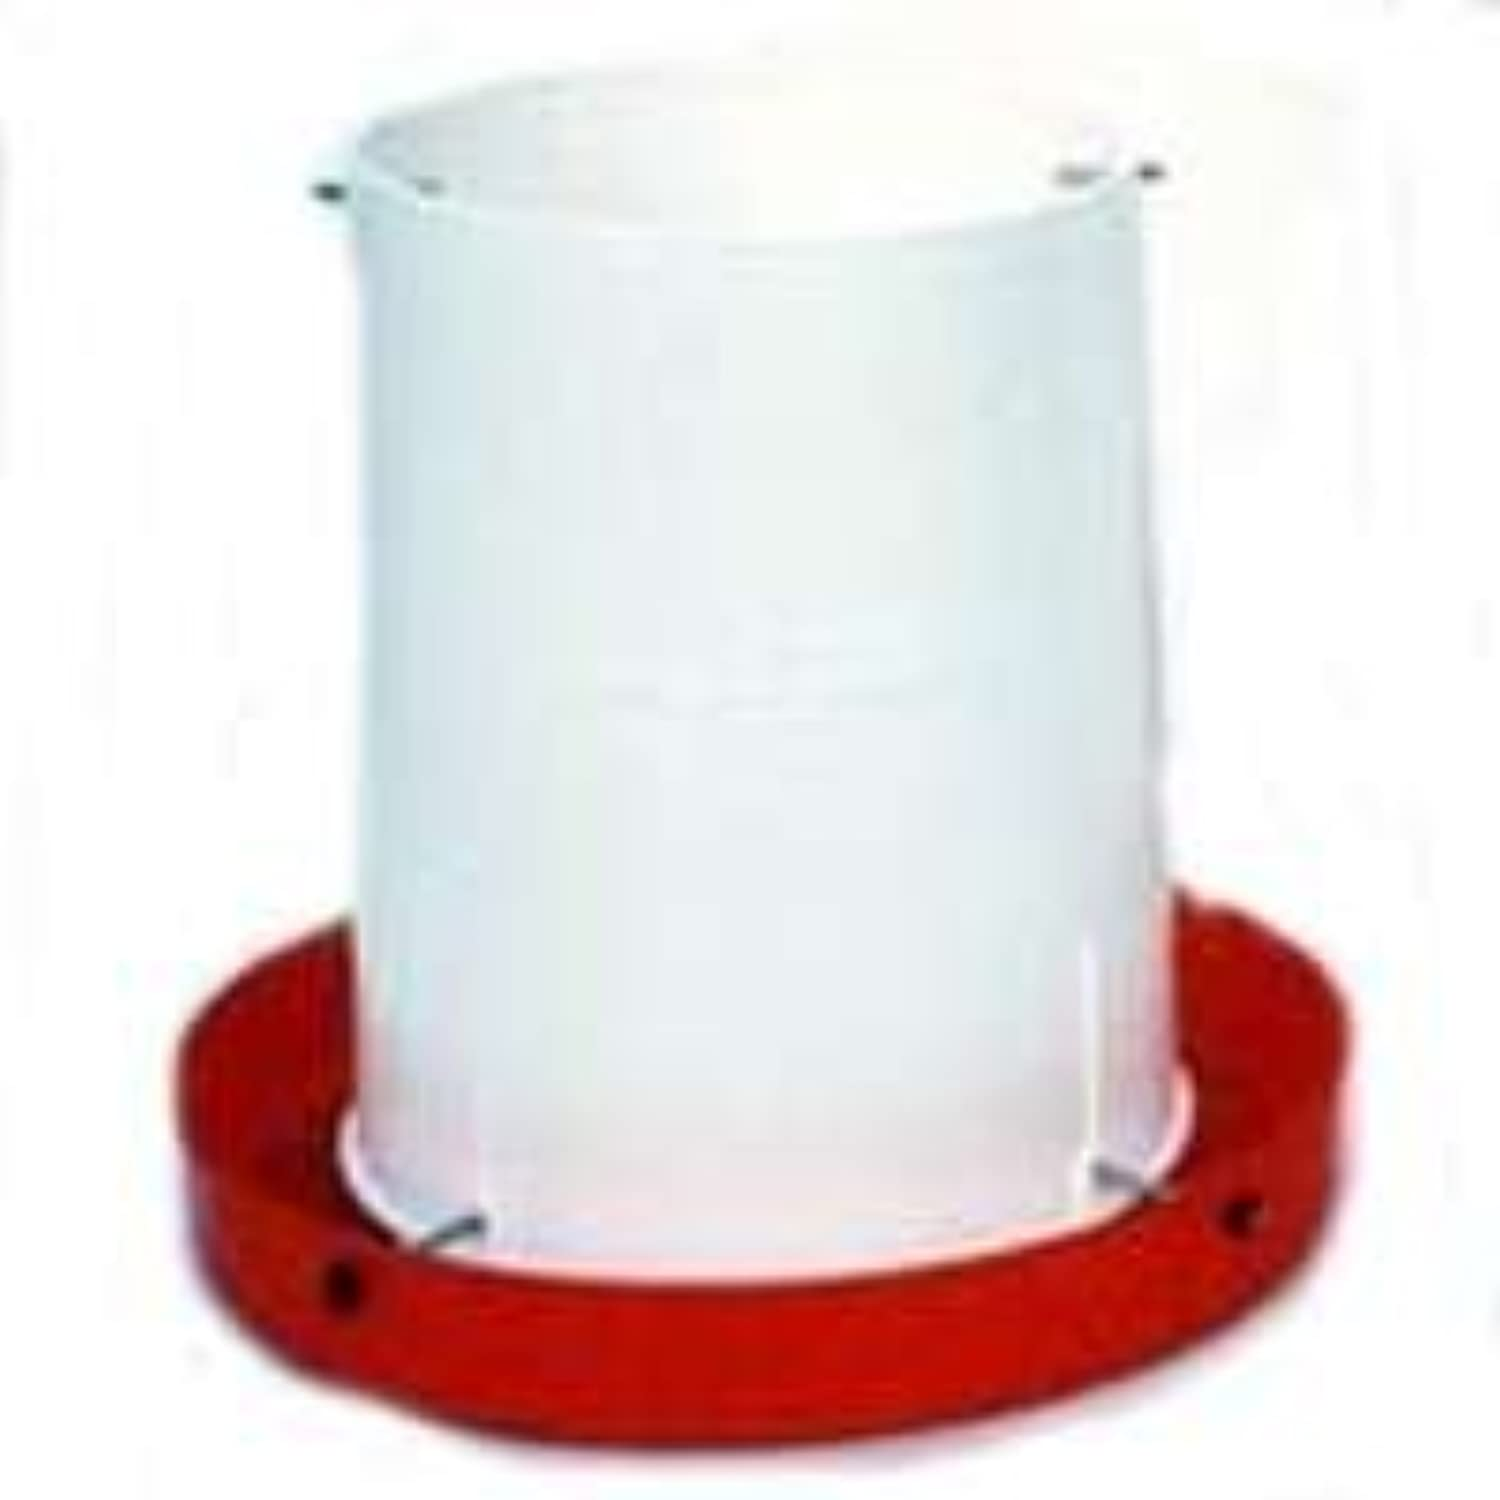 Brower Hf15 15Pound All Poly Poultry Hanging Feeder